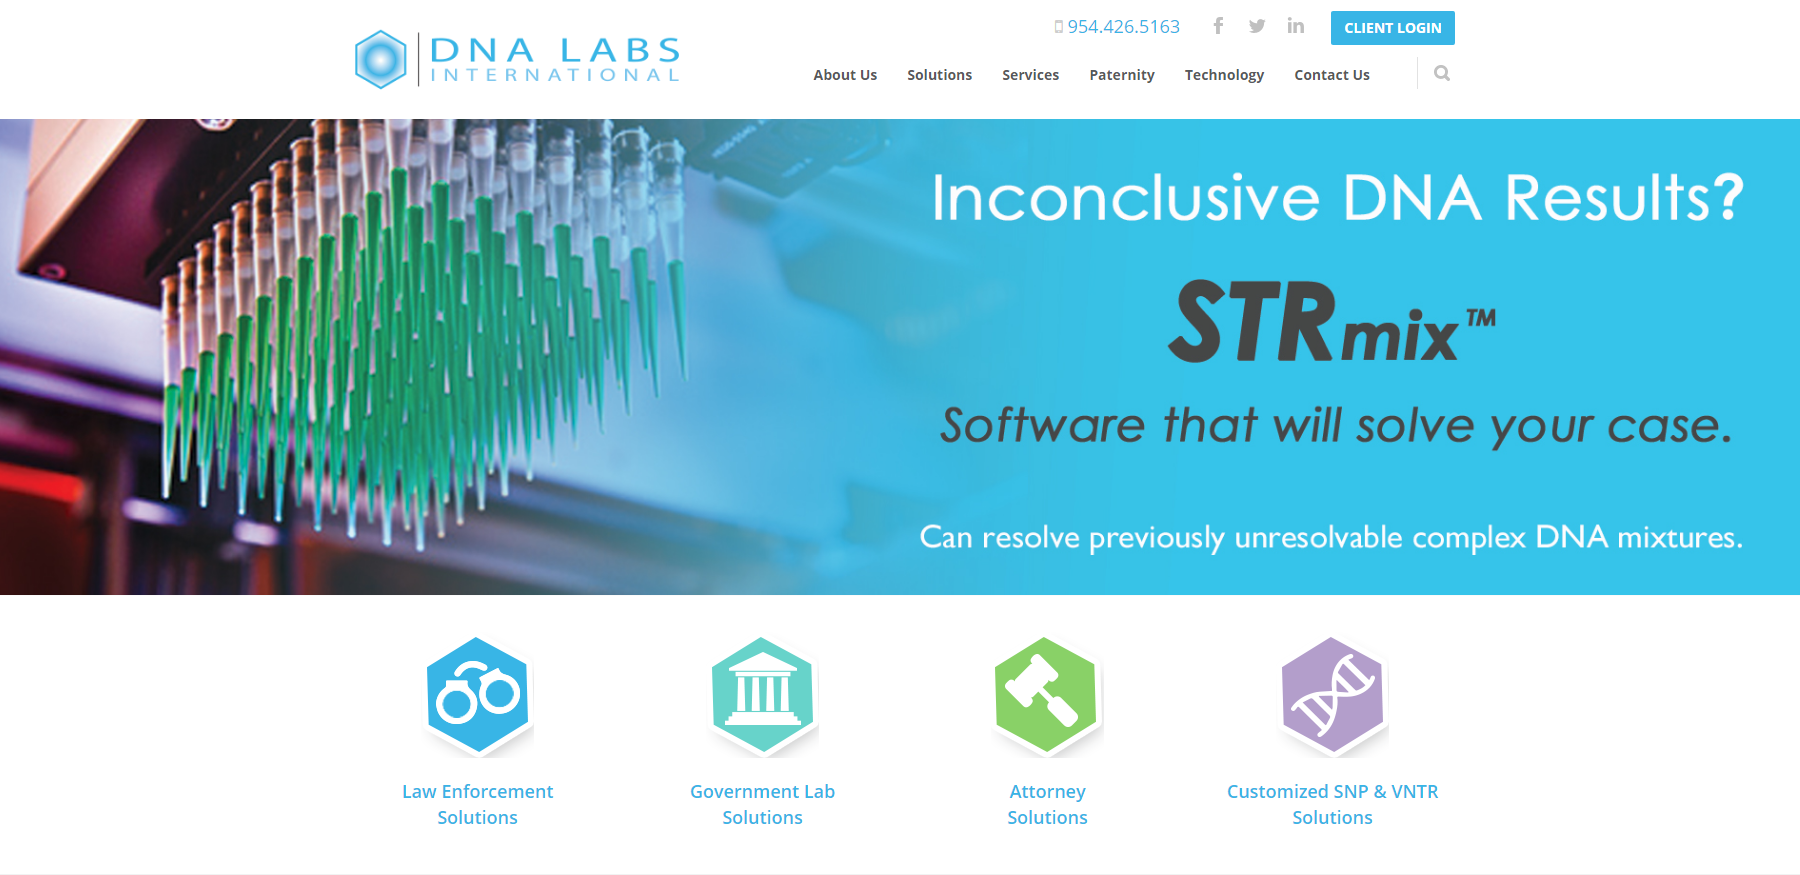 DNA Labs International Launches New Website